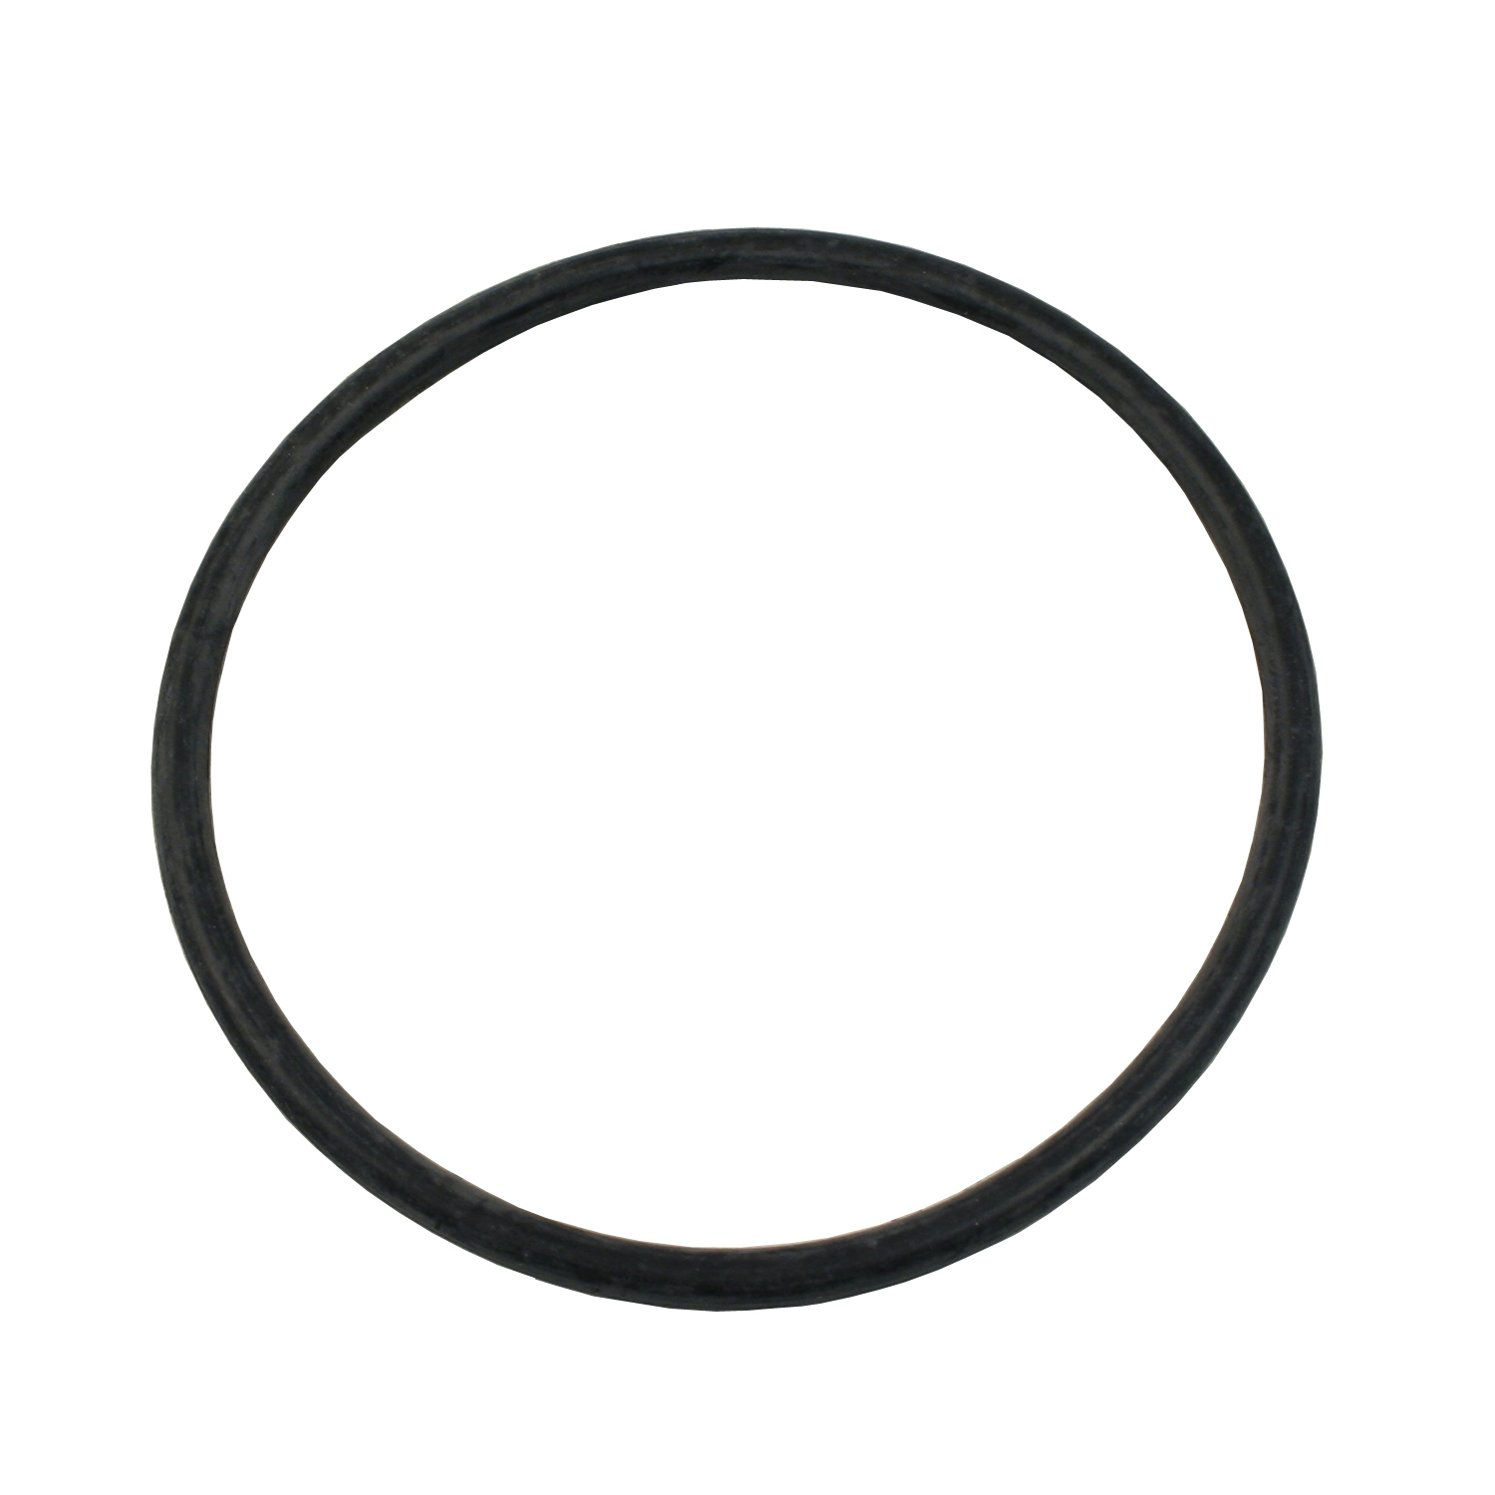 Beck Arnley 039-0113 Thermostat Gasket BA039-0113